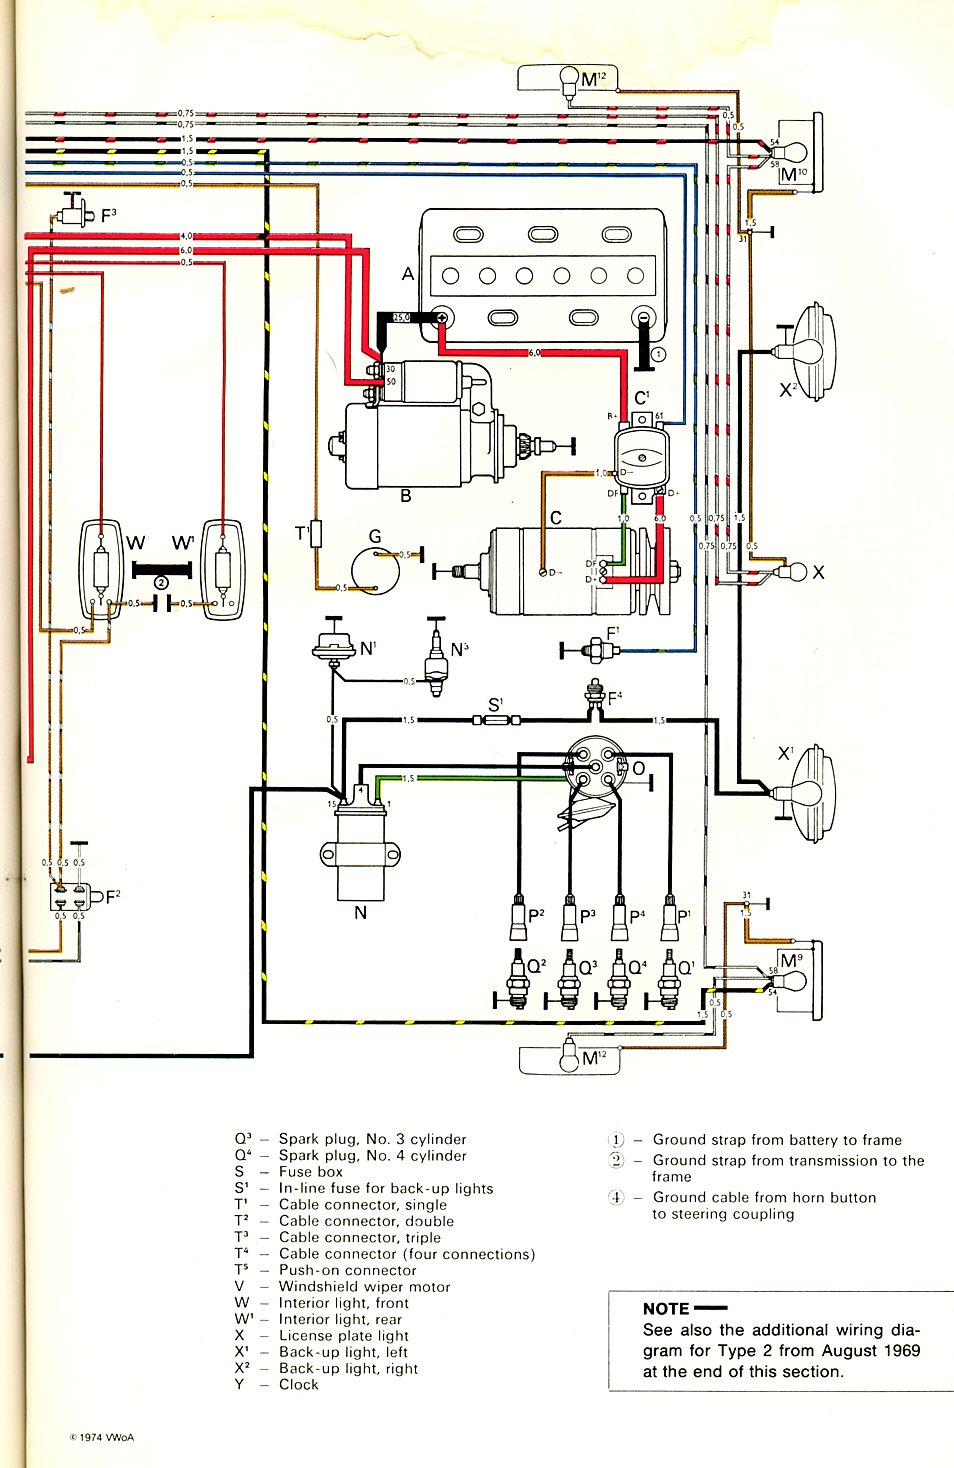 baybus_70b thesamba com type 2 wiring diagrams vw transporter wiring diagram t5 at edmiracle.co